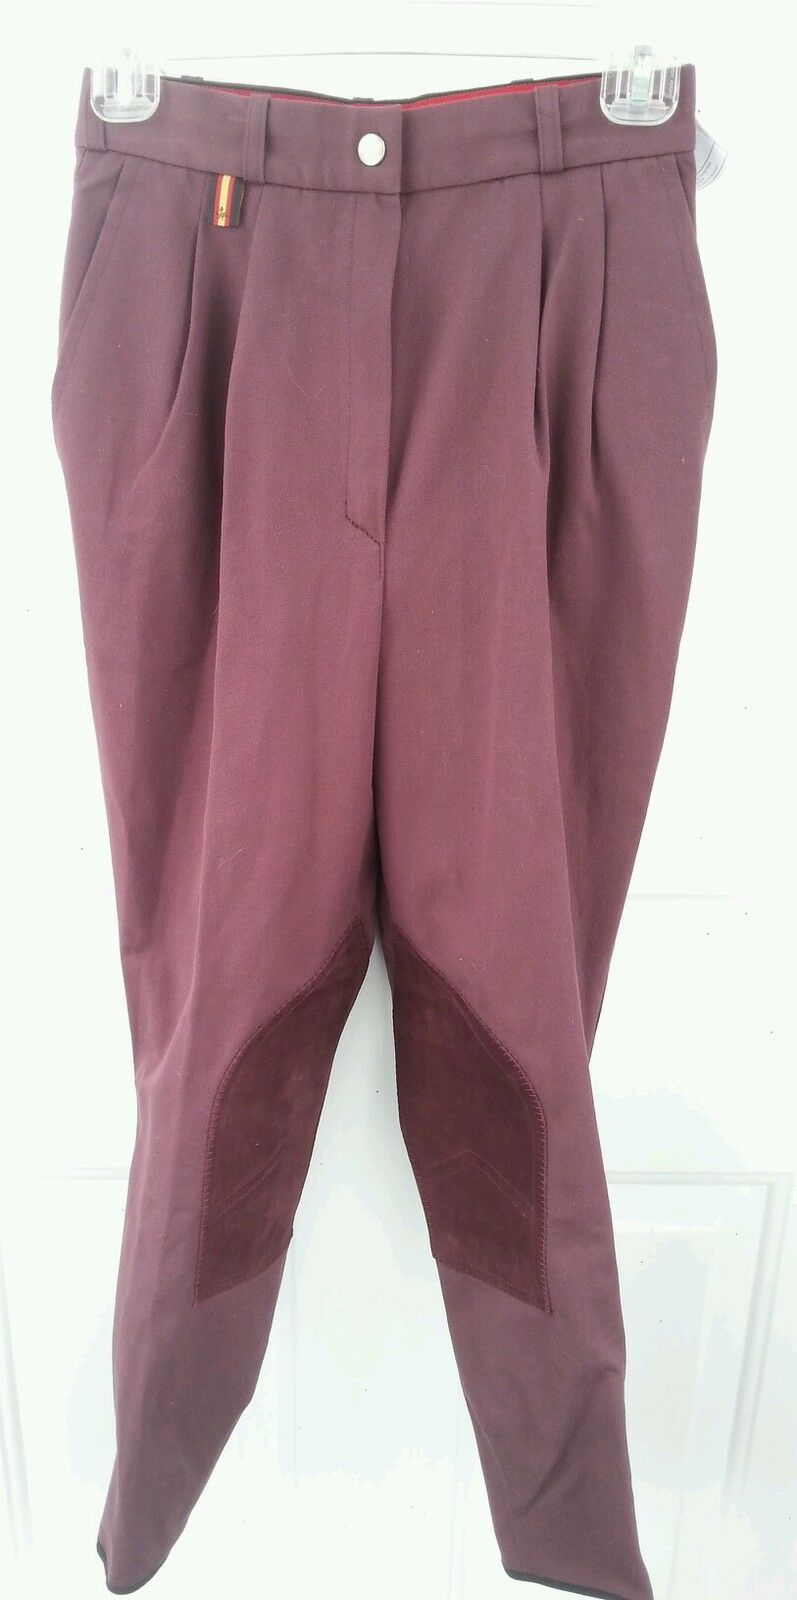 NWT GEORG AACHENER SZ 26 Pleated Front Zipper Riding Breeches 26R pinkwood